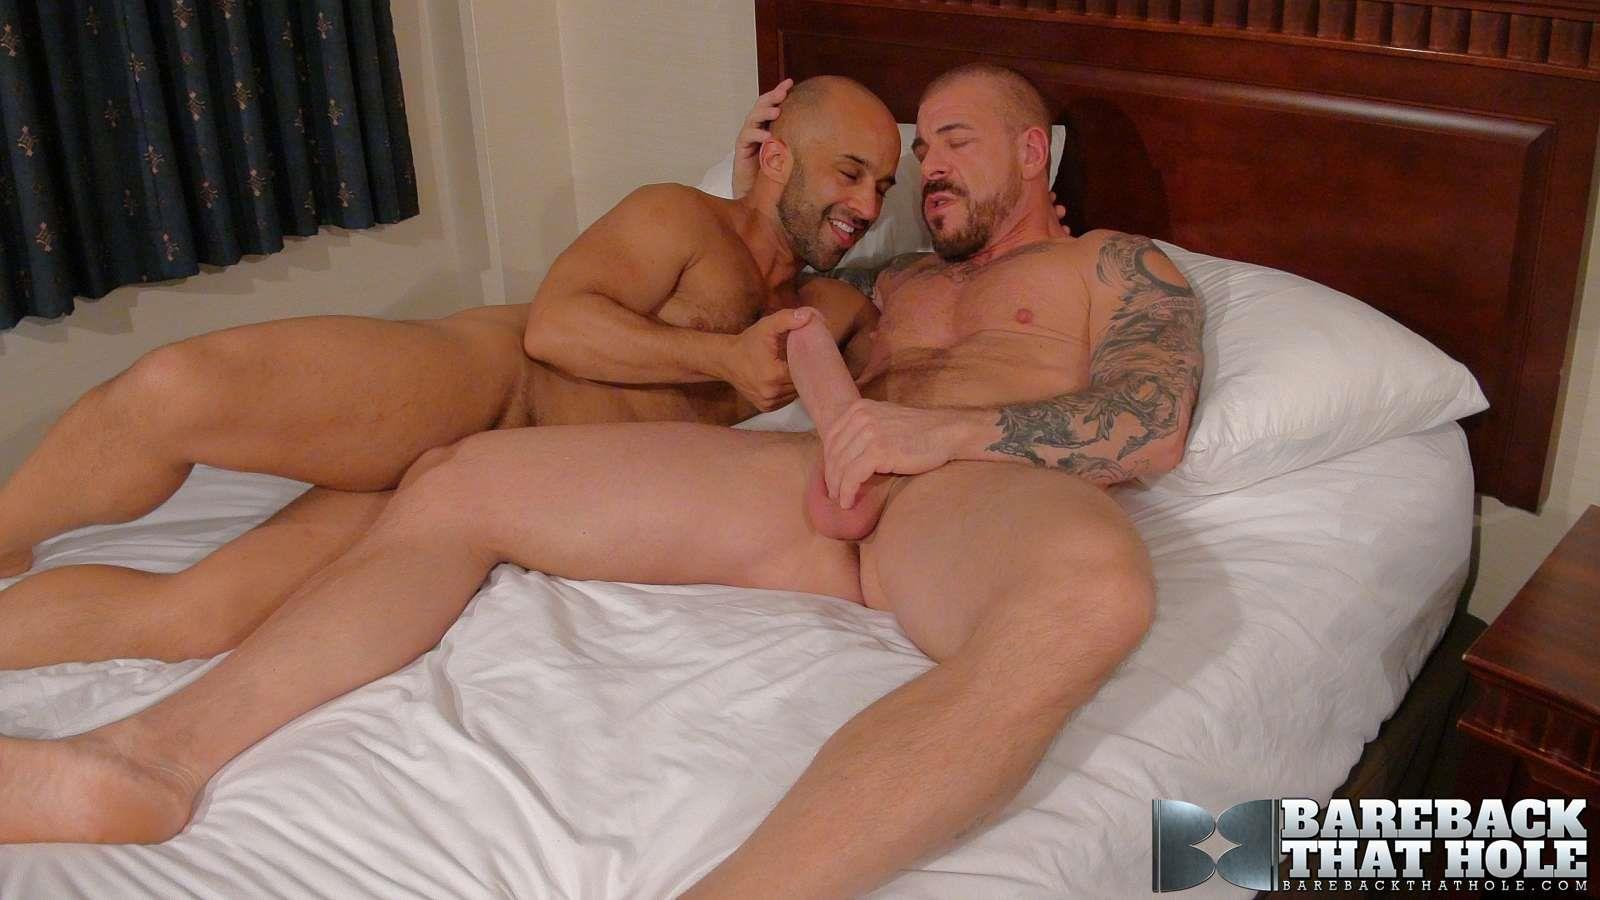 Bareback-That-Hole-Bareback-That-Hole-Rocco-Steele-and-Igor-Lukas-Huge-Cock-Barebacking-A-Tight-Ass-Amateur-Gay-Porn-01 Rocco Steele Tearing Up A Tight Ass With His Huge Cock